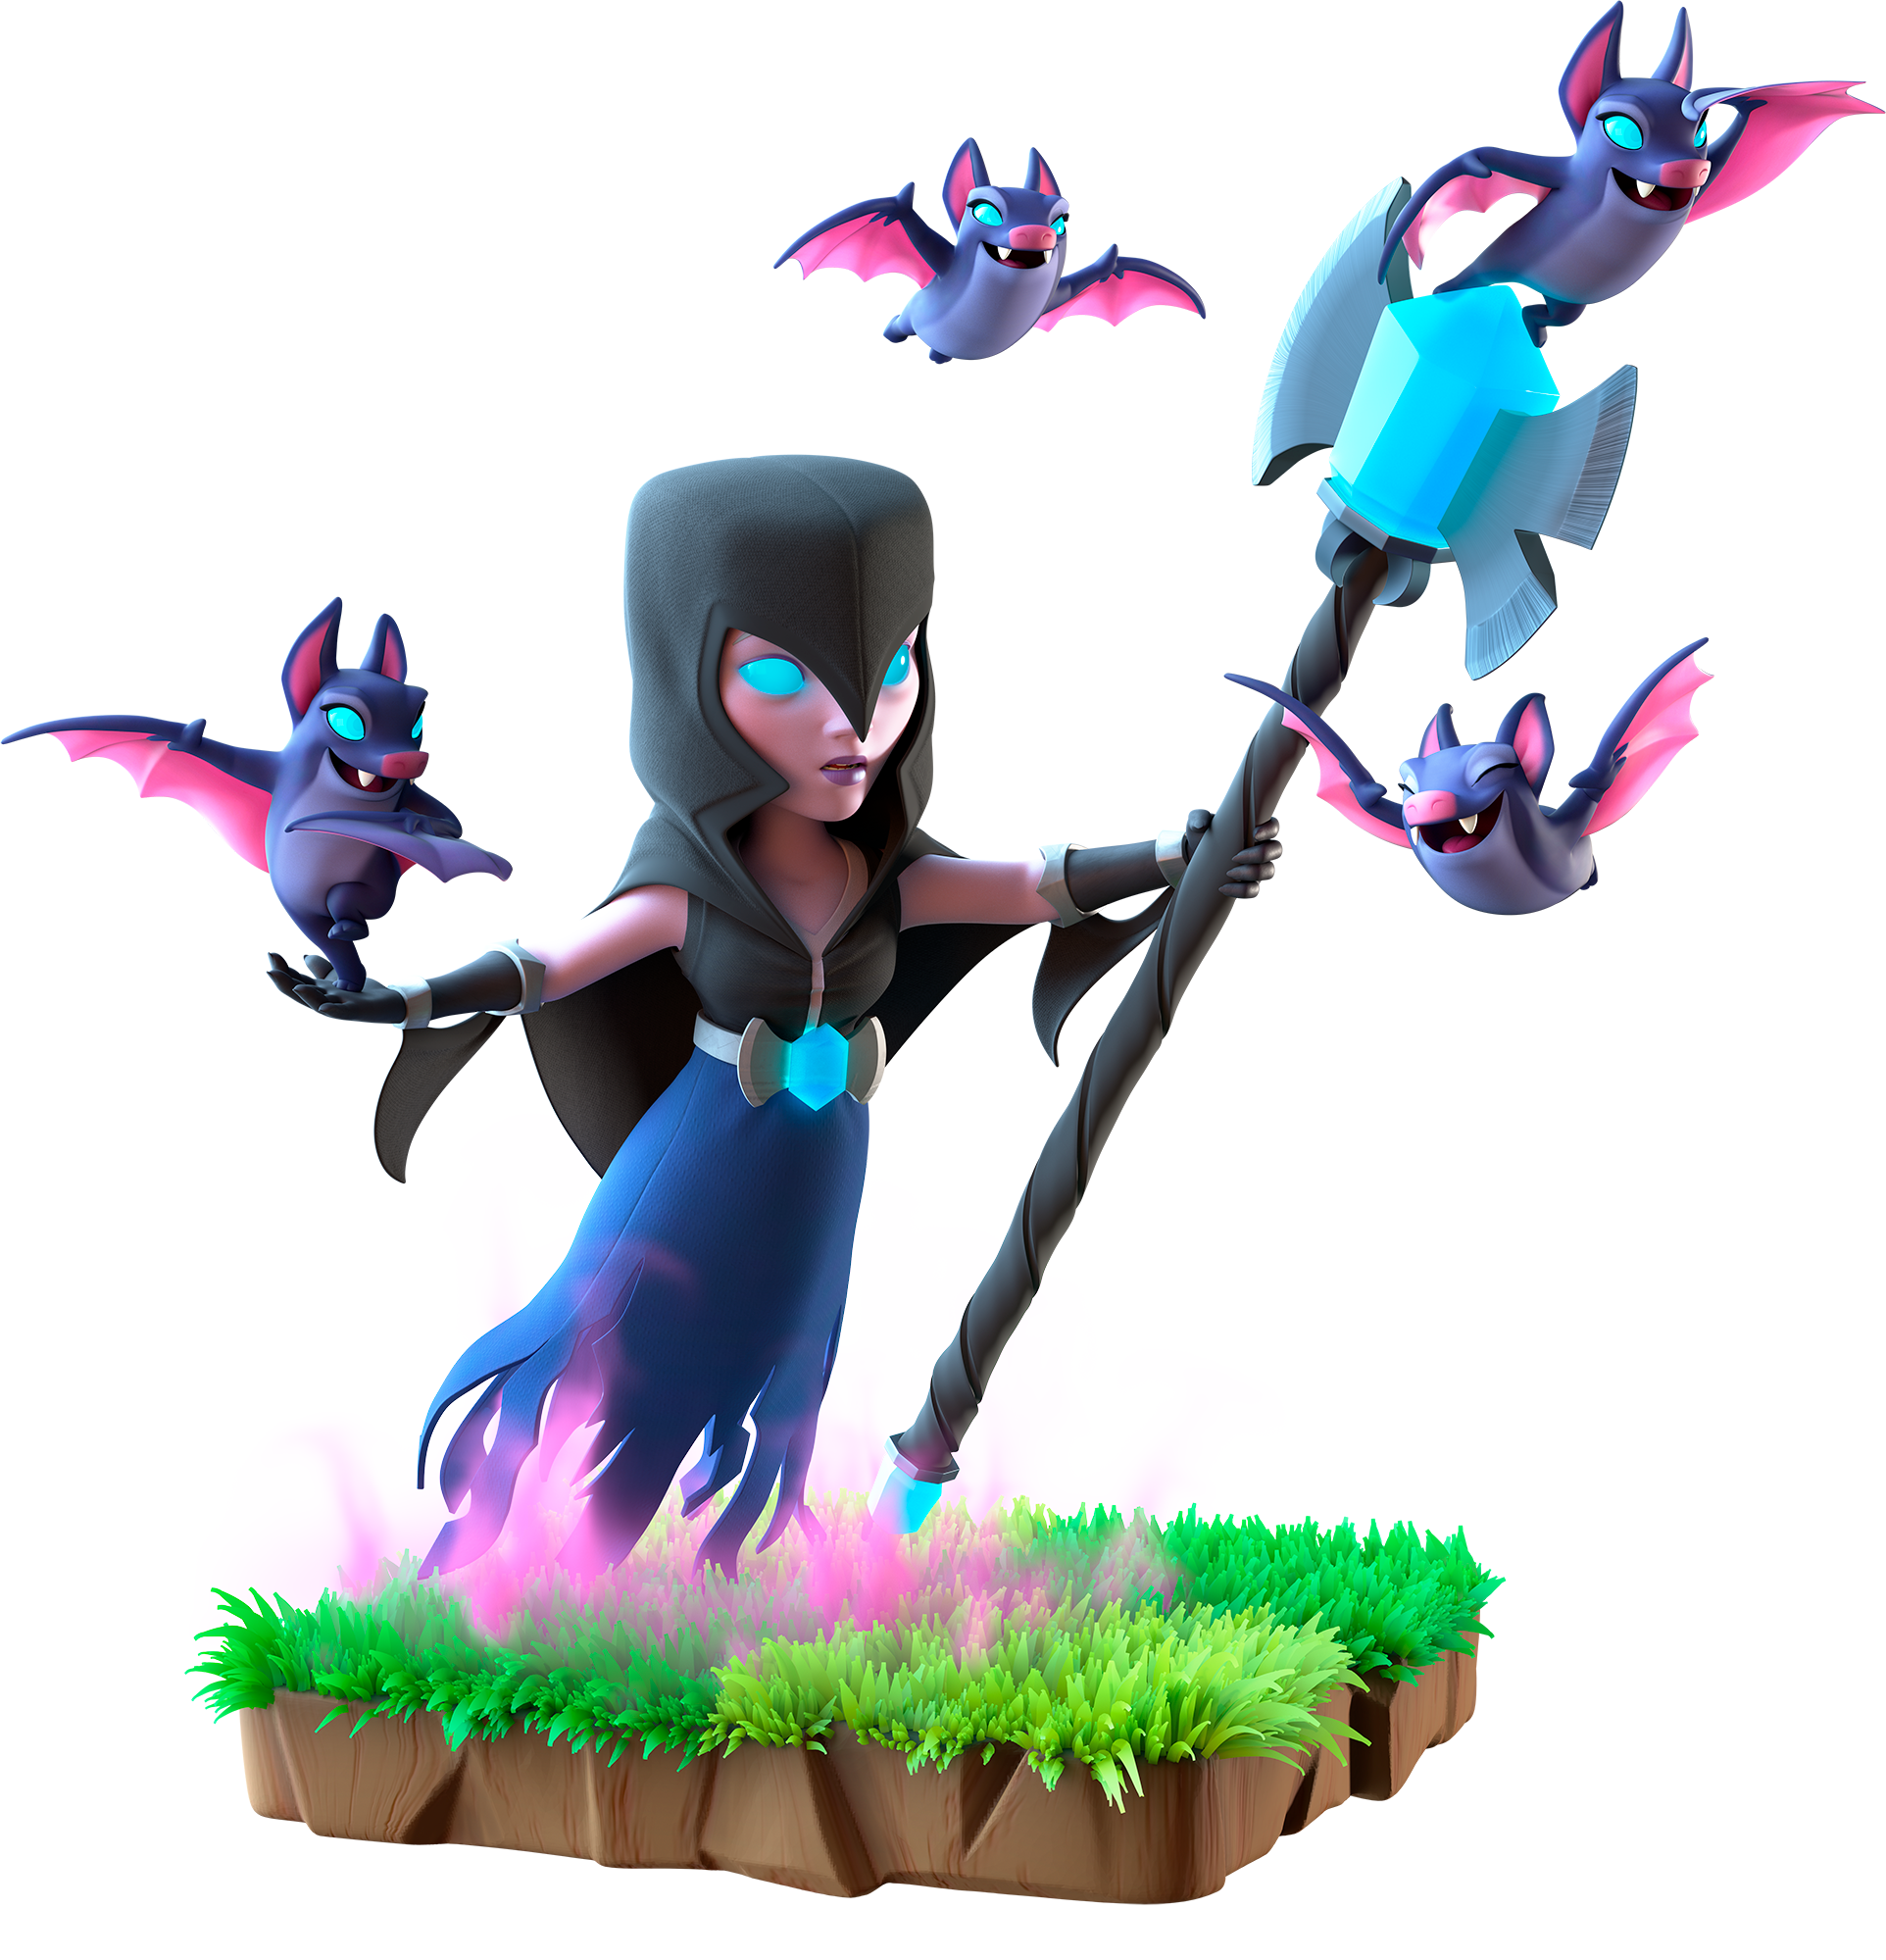 Clash royale witch png. Image night info of